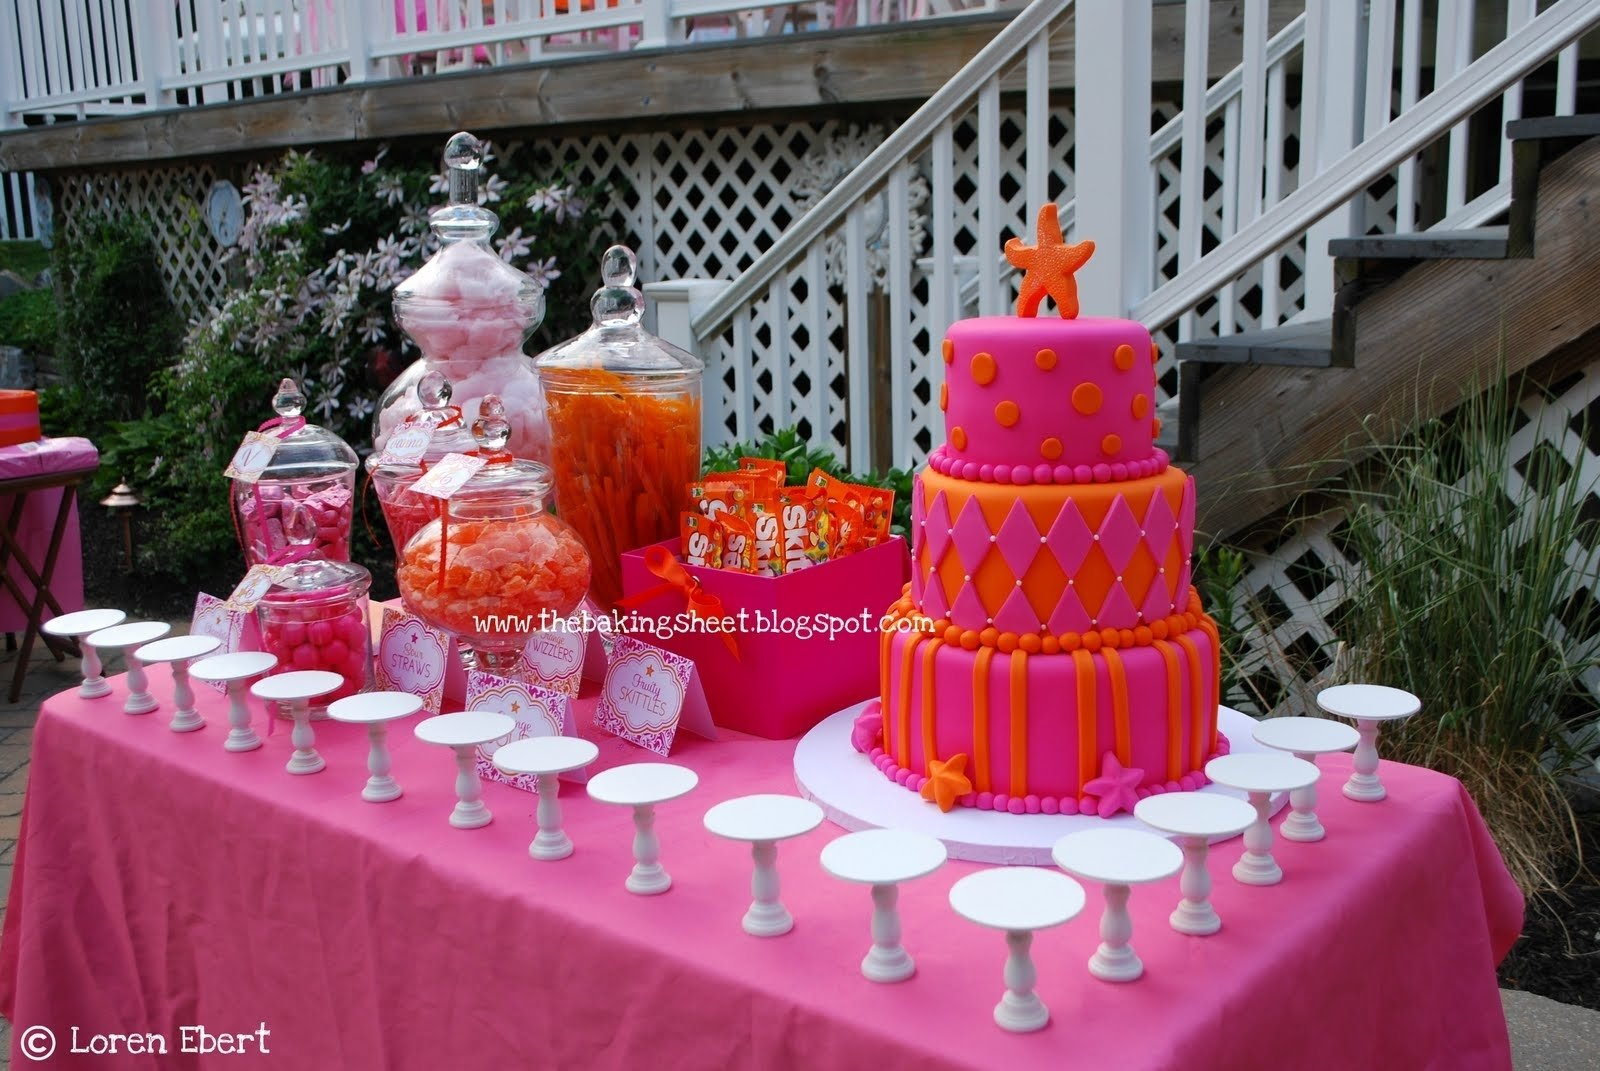 10 Wonderful Sweet 16 Pool Party Ideas 1000 images about sweet 16 balloon party decor on pinterest with 2020